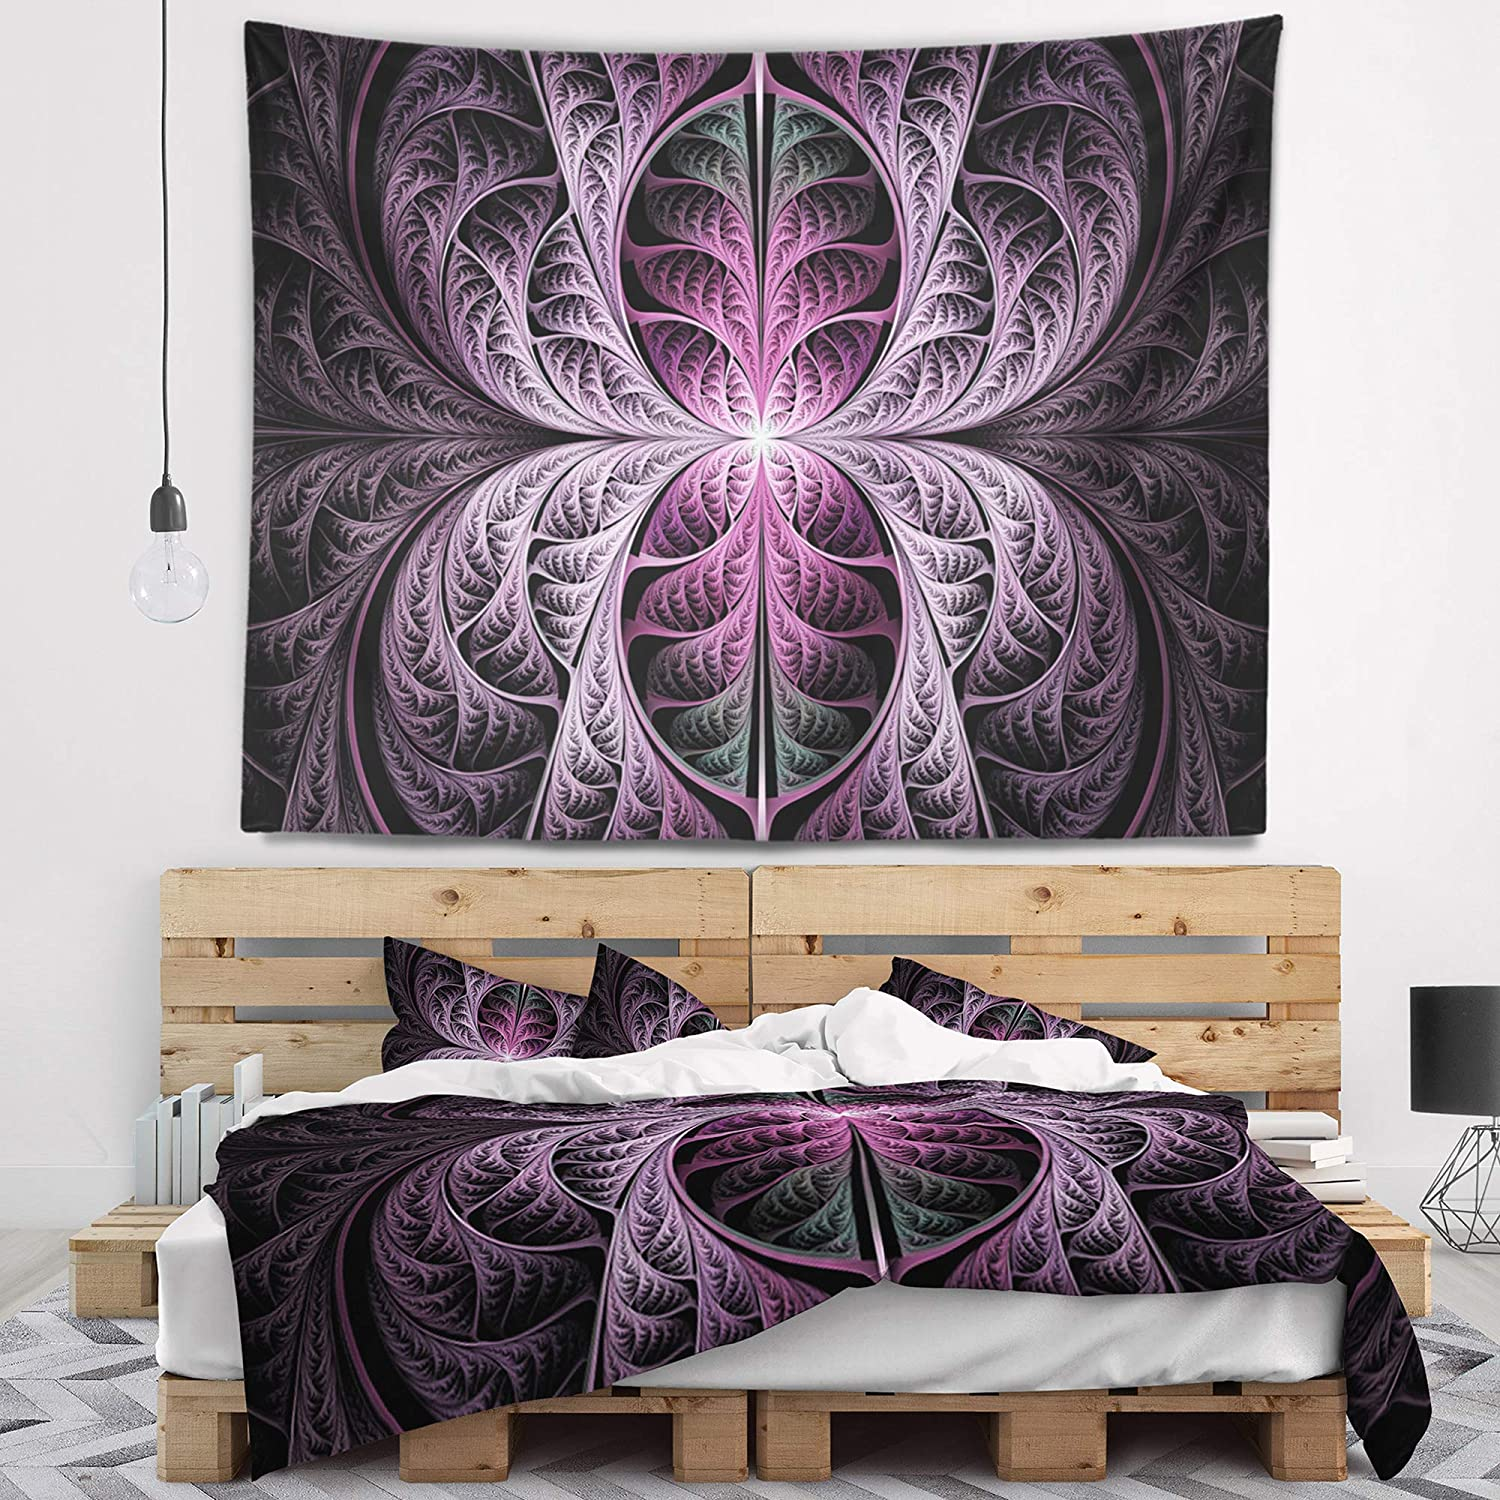 Designart TAP15871-60-50  Purple Glowing Fractal Stained Glass Abstract Blanket D/écor Art for Home and Office Wall Tapestry Large 60 x 50